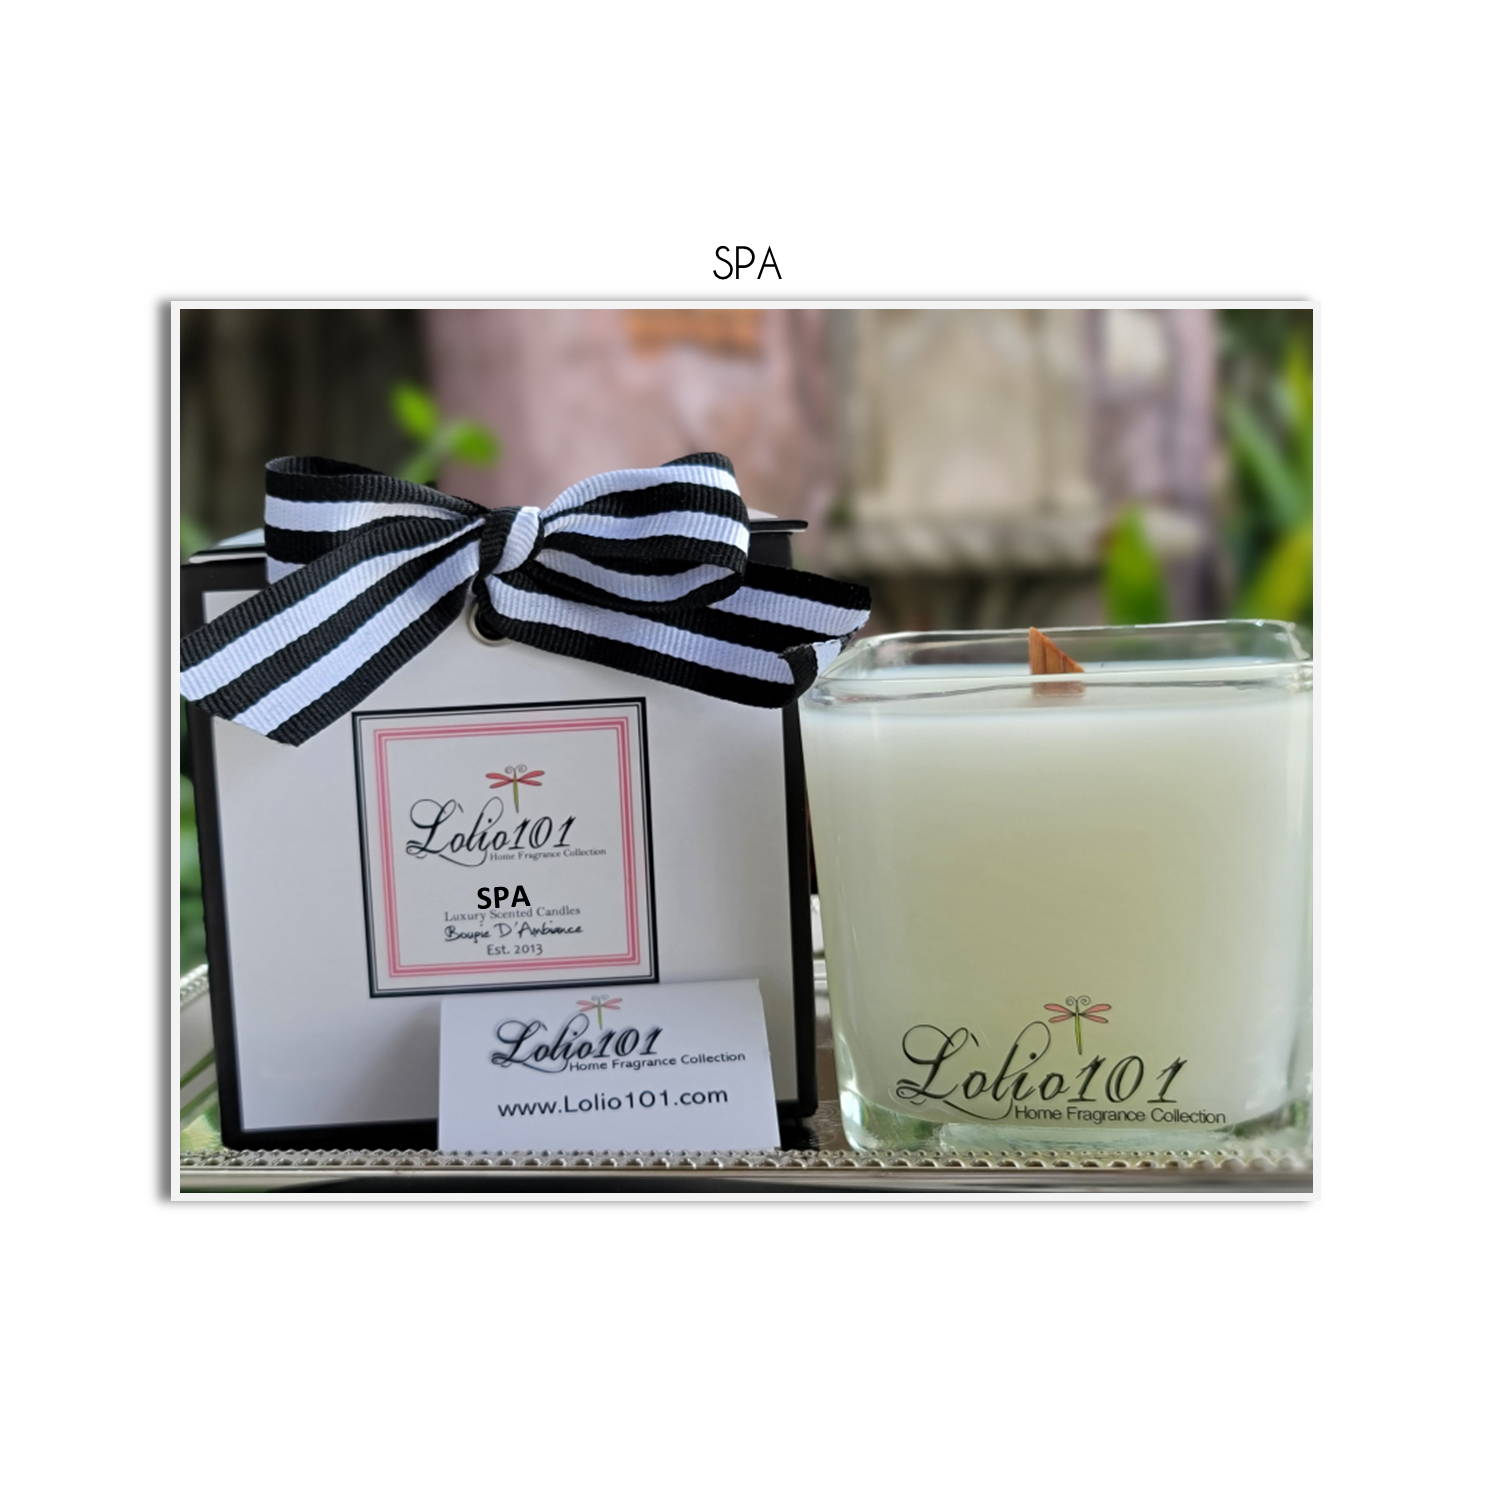 SPA luxury scented candle 12oz/340g